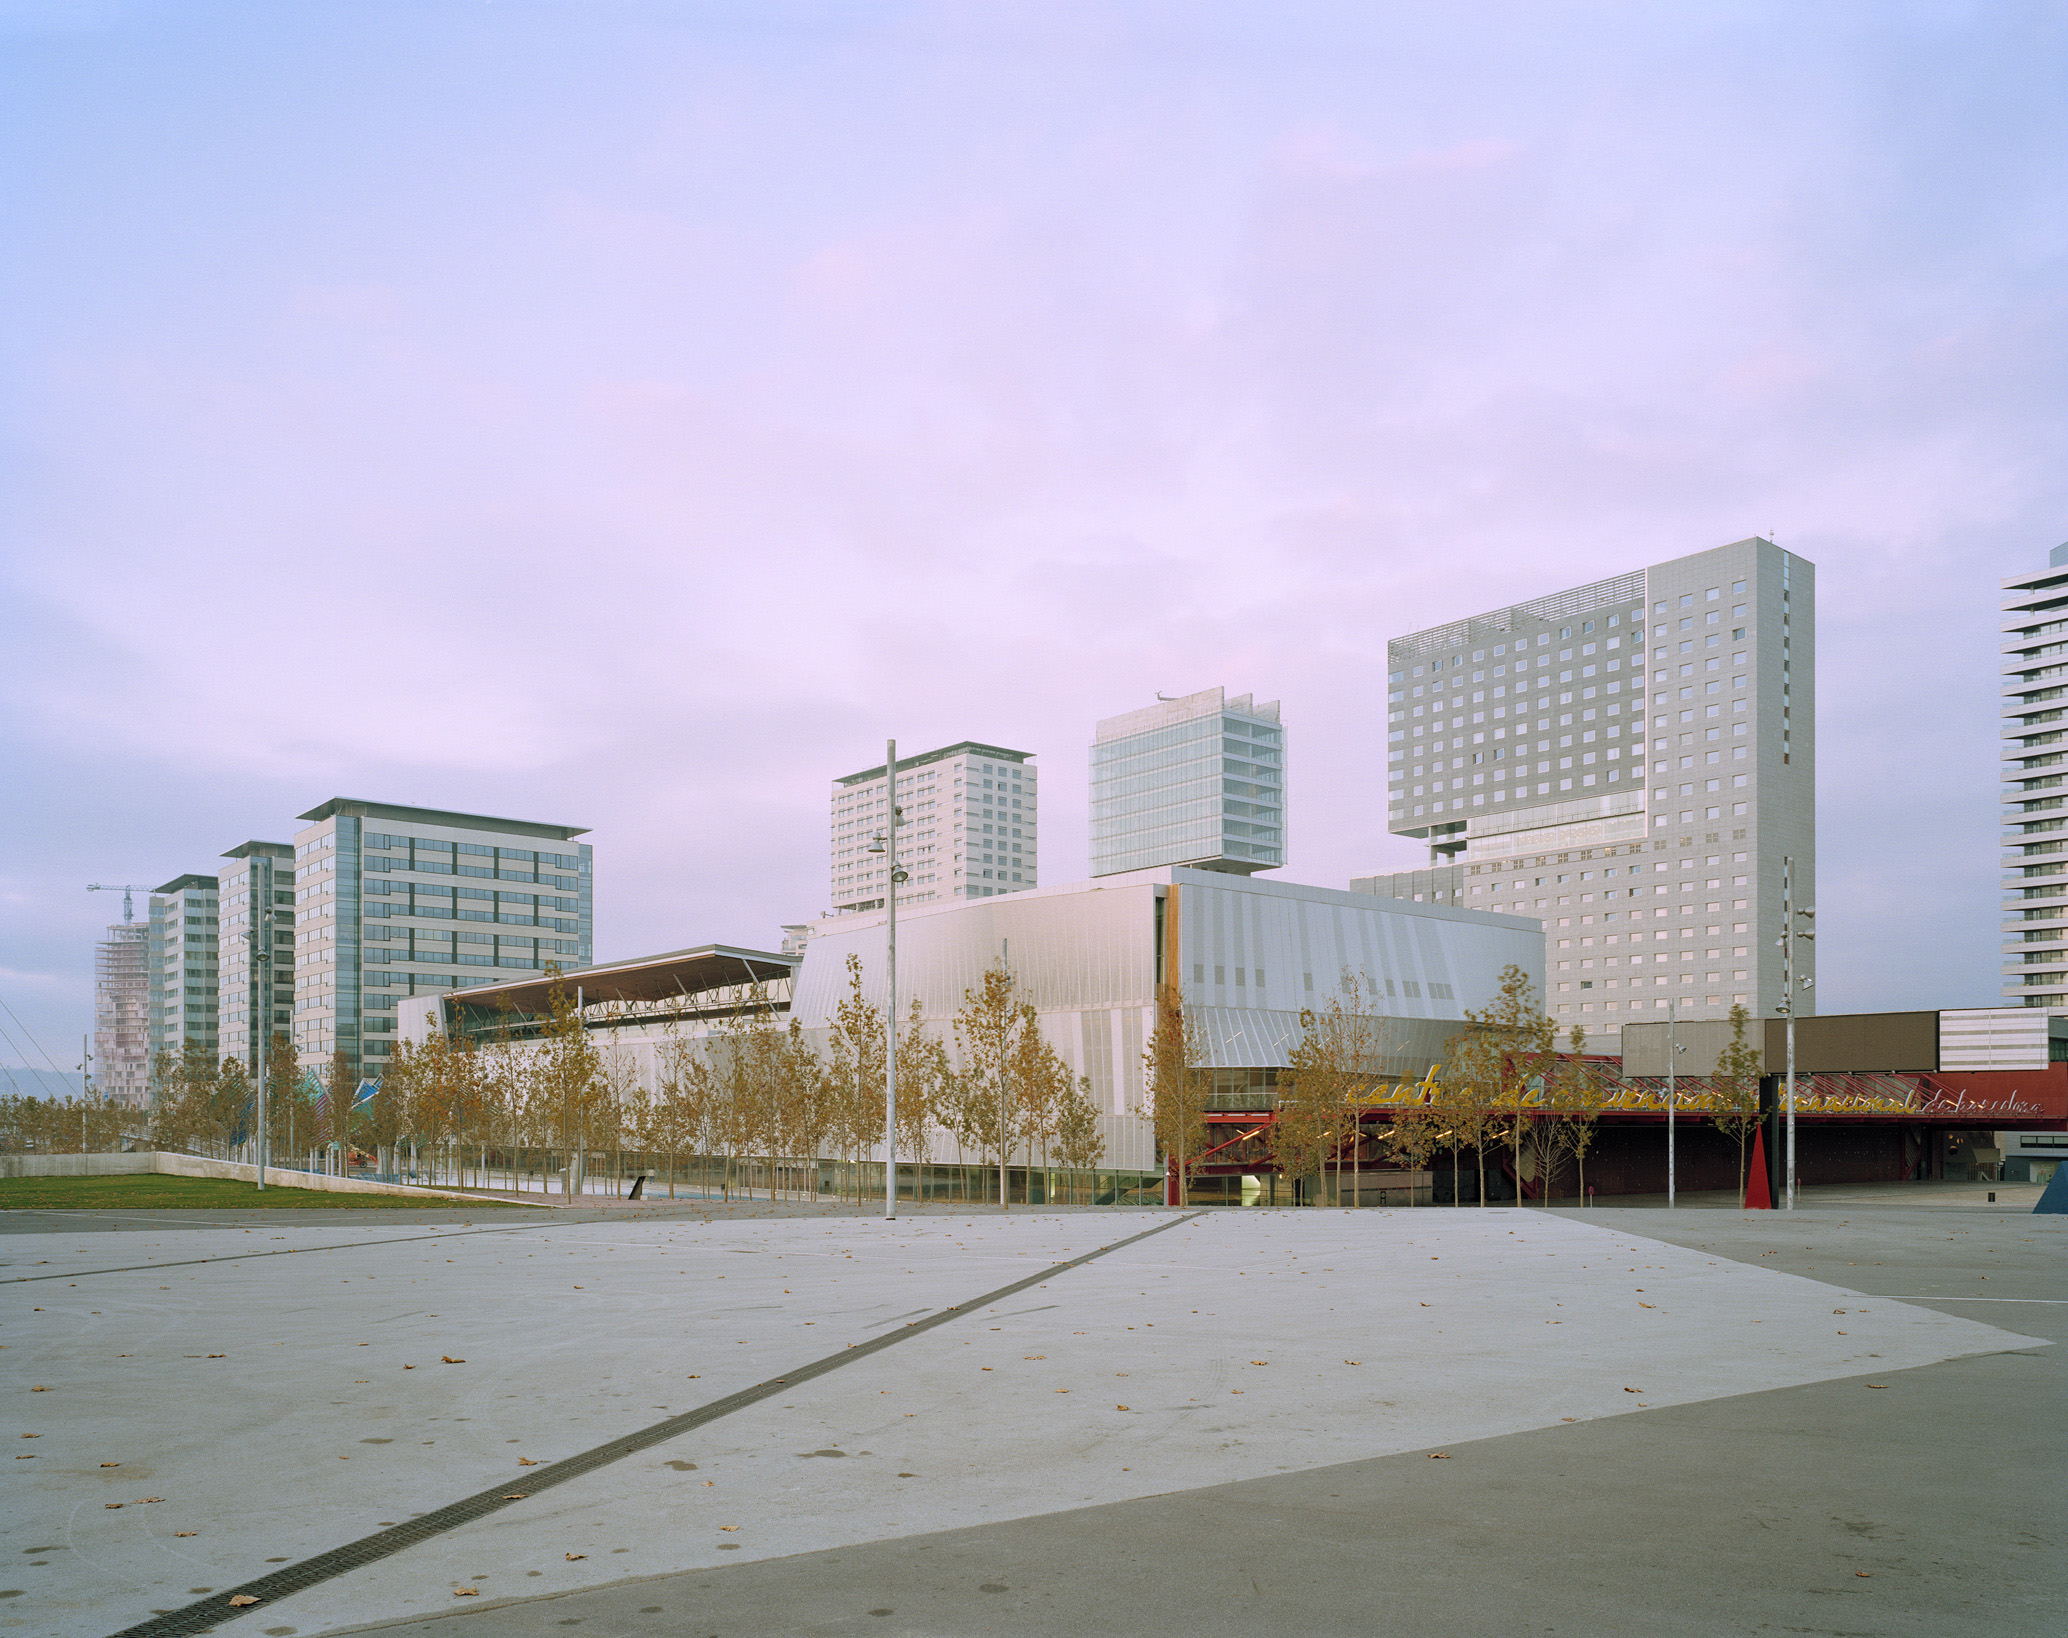 International Convention Center in the area of Forum 2004, Barcelona